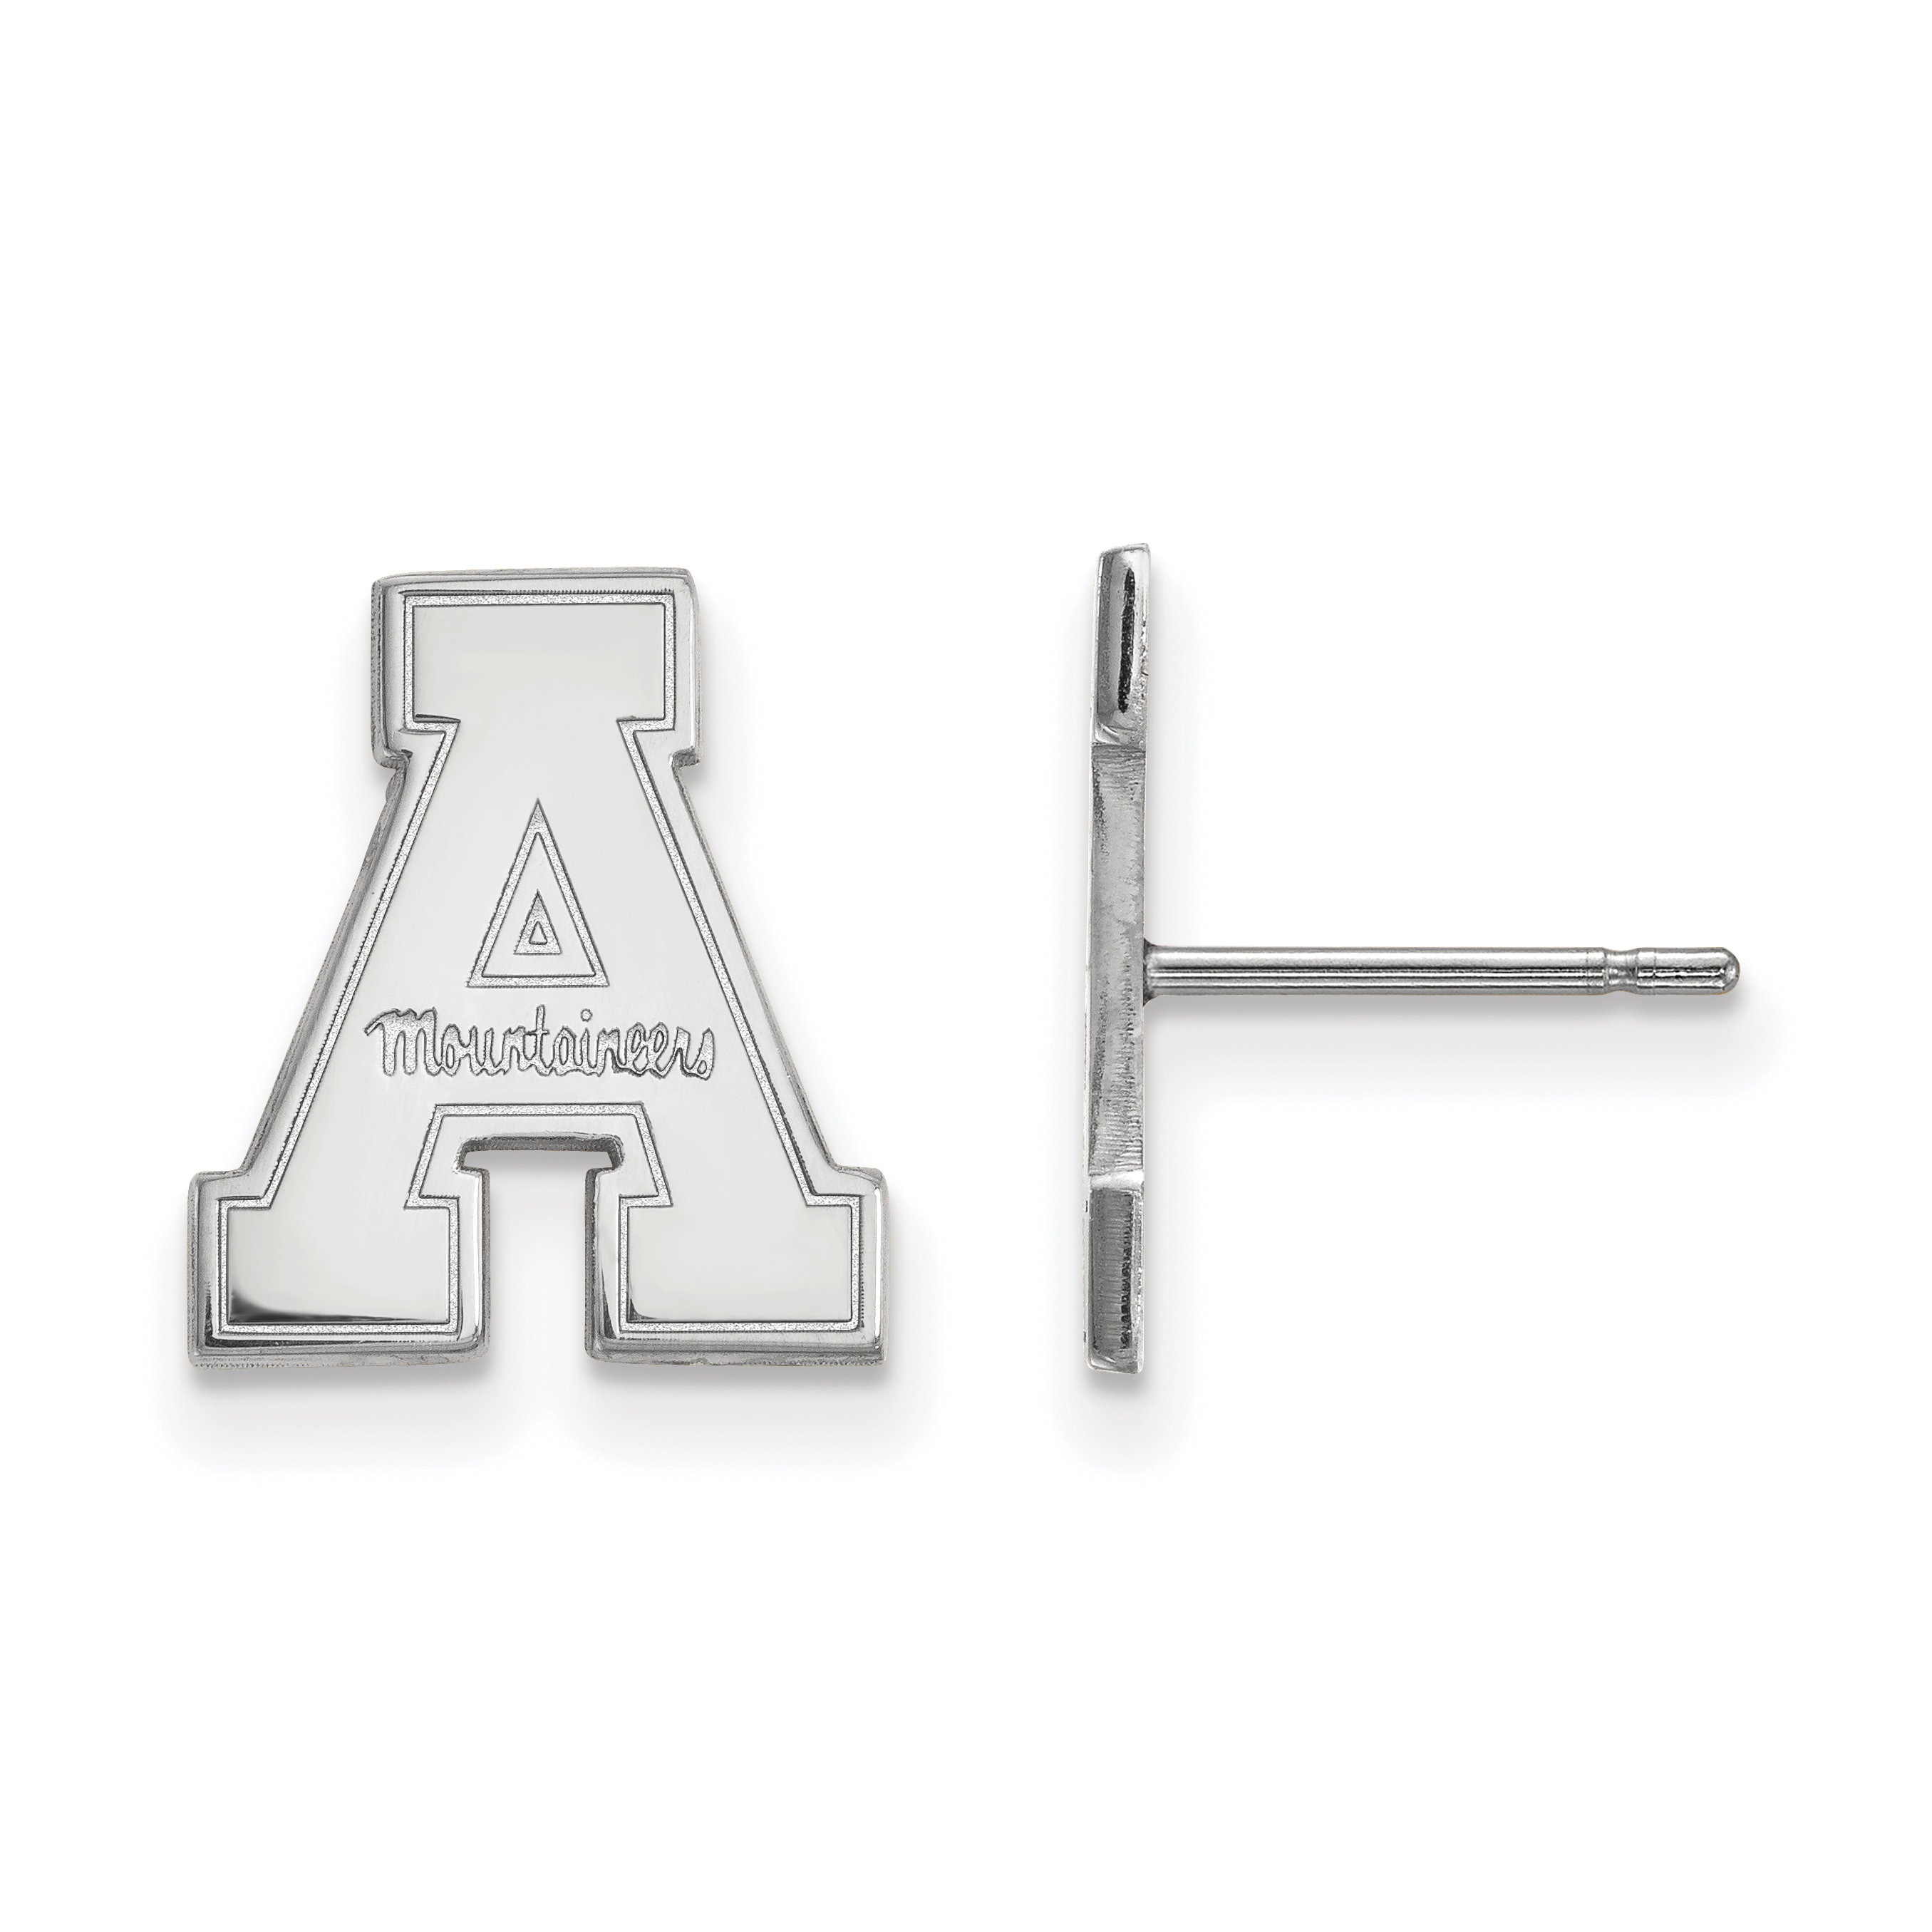 10kw Appalachian State University Small Post Earrings. weight: 1.65, Lengh: 11mm